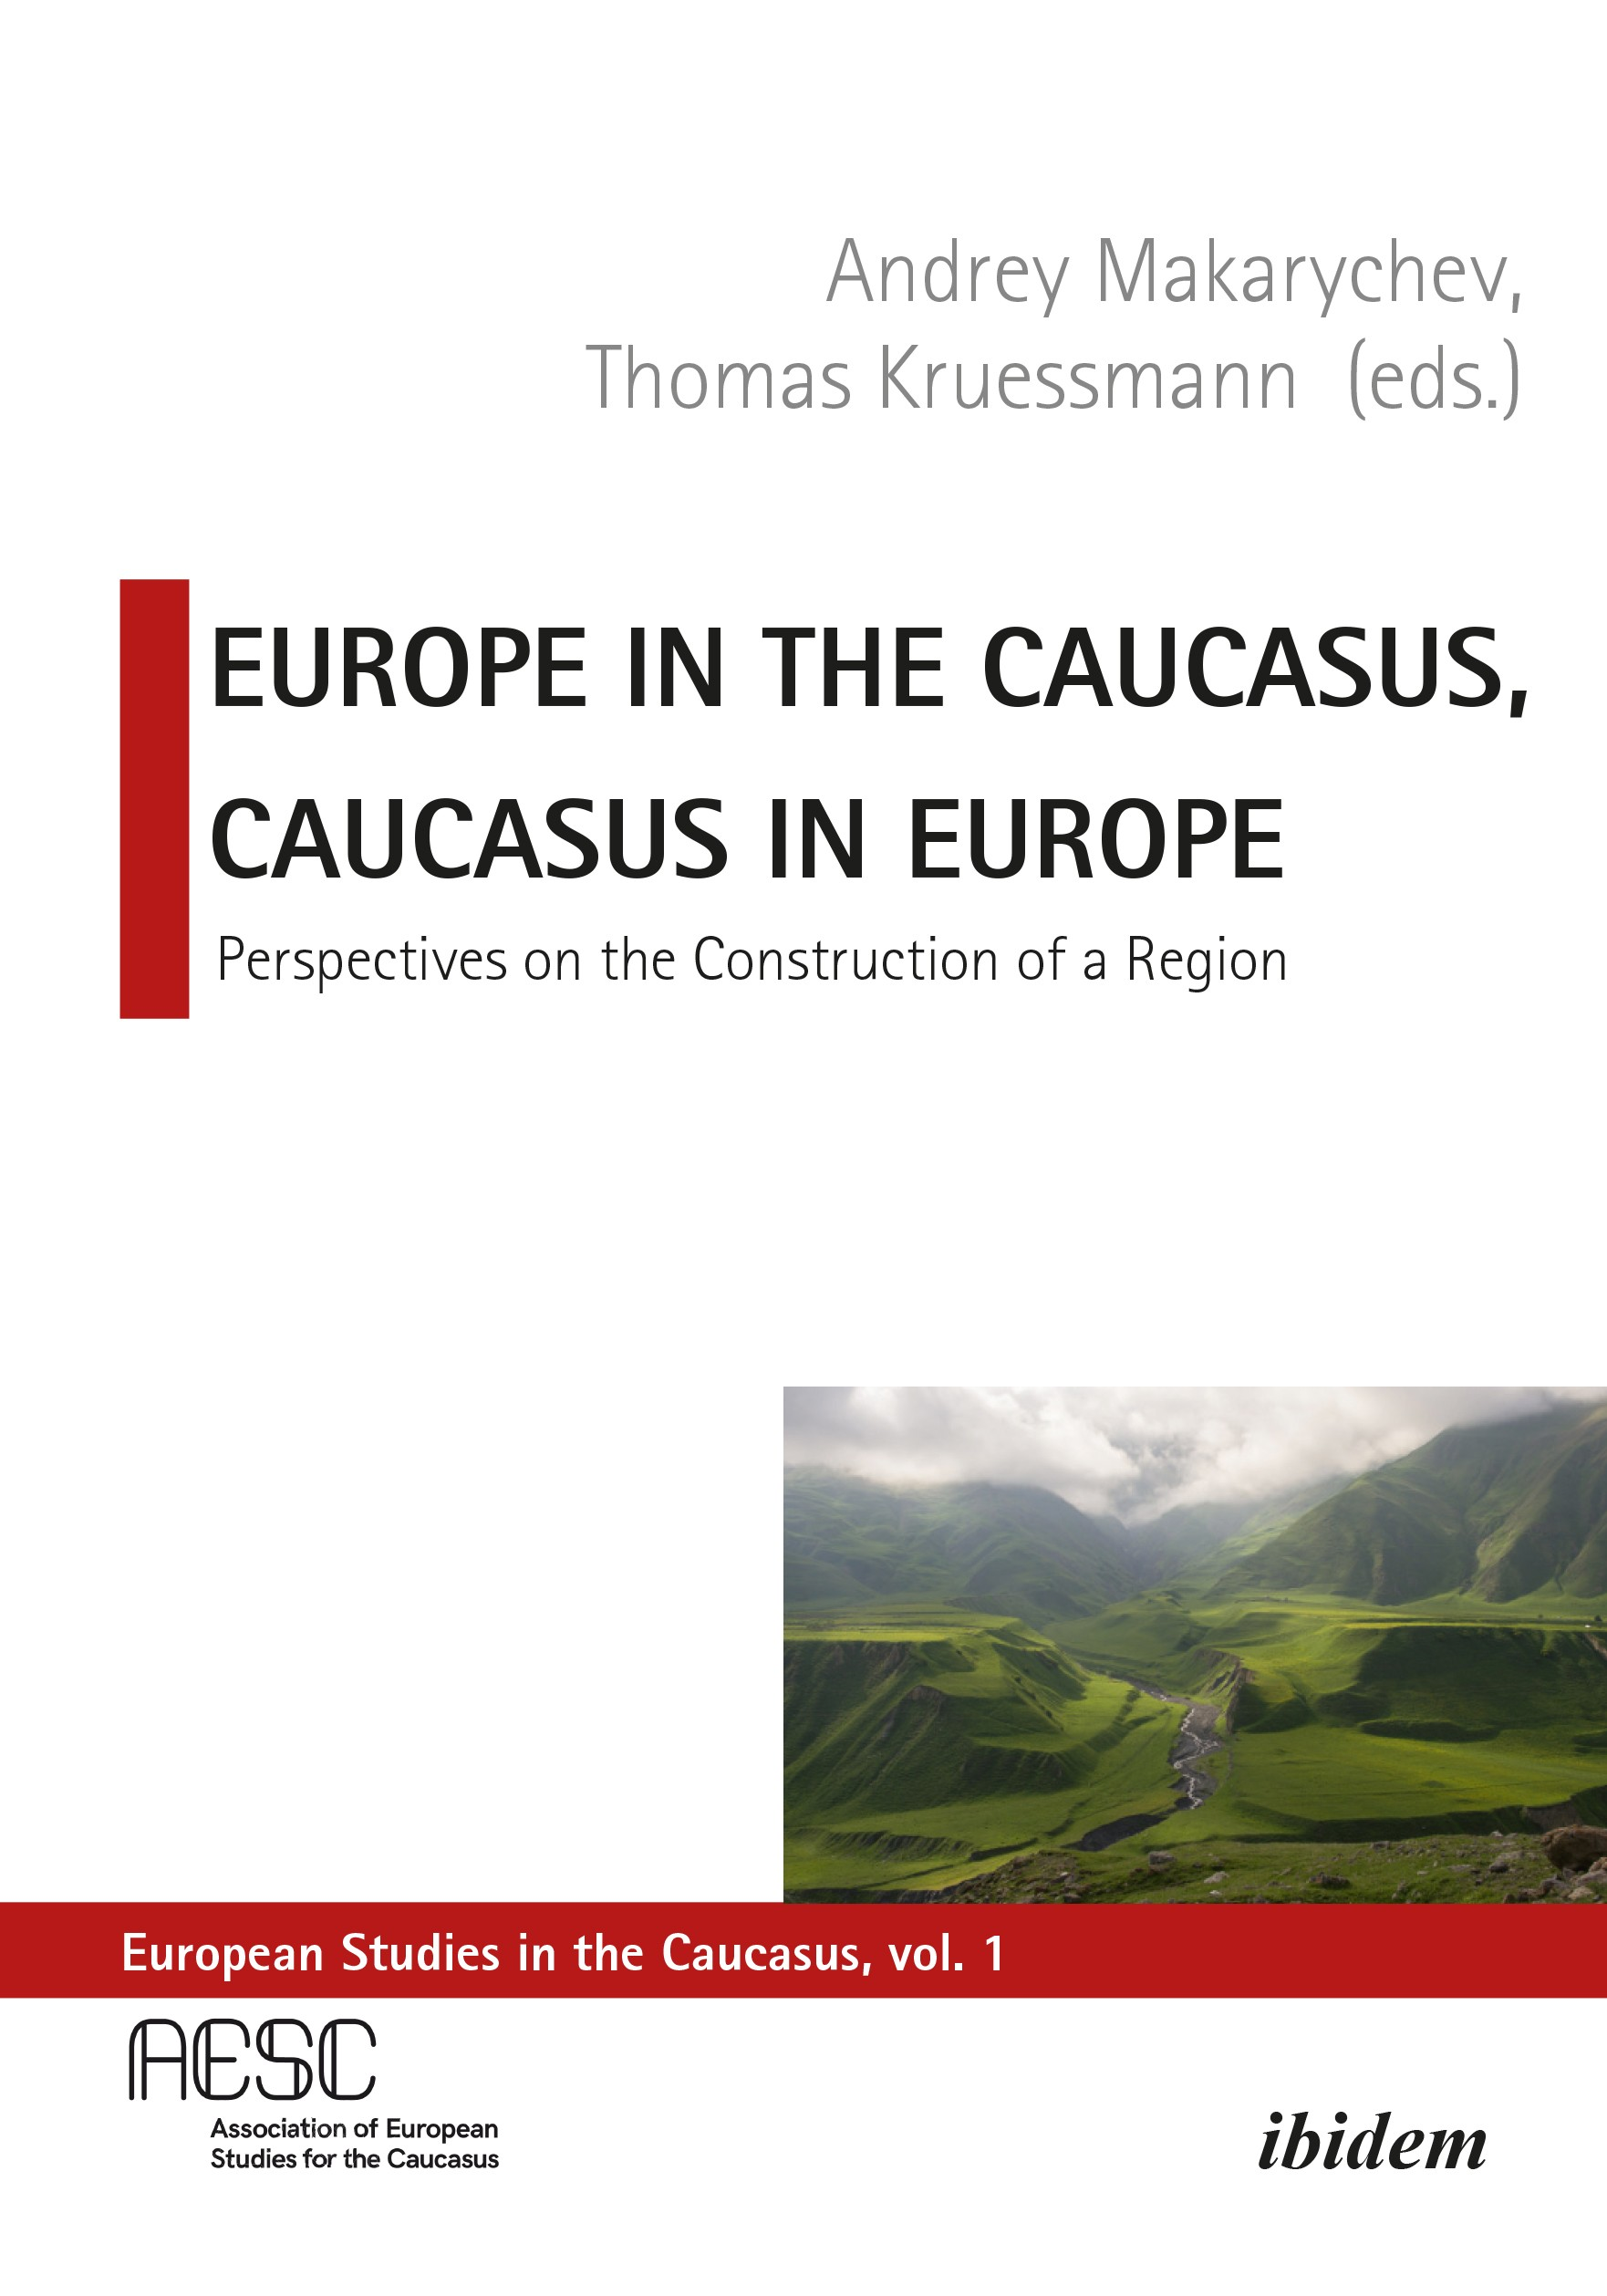 Europe in the Caucasus, Caucasus in Europe